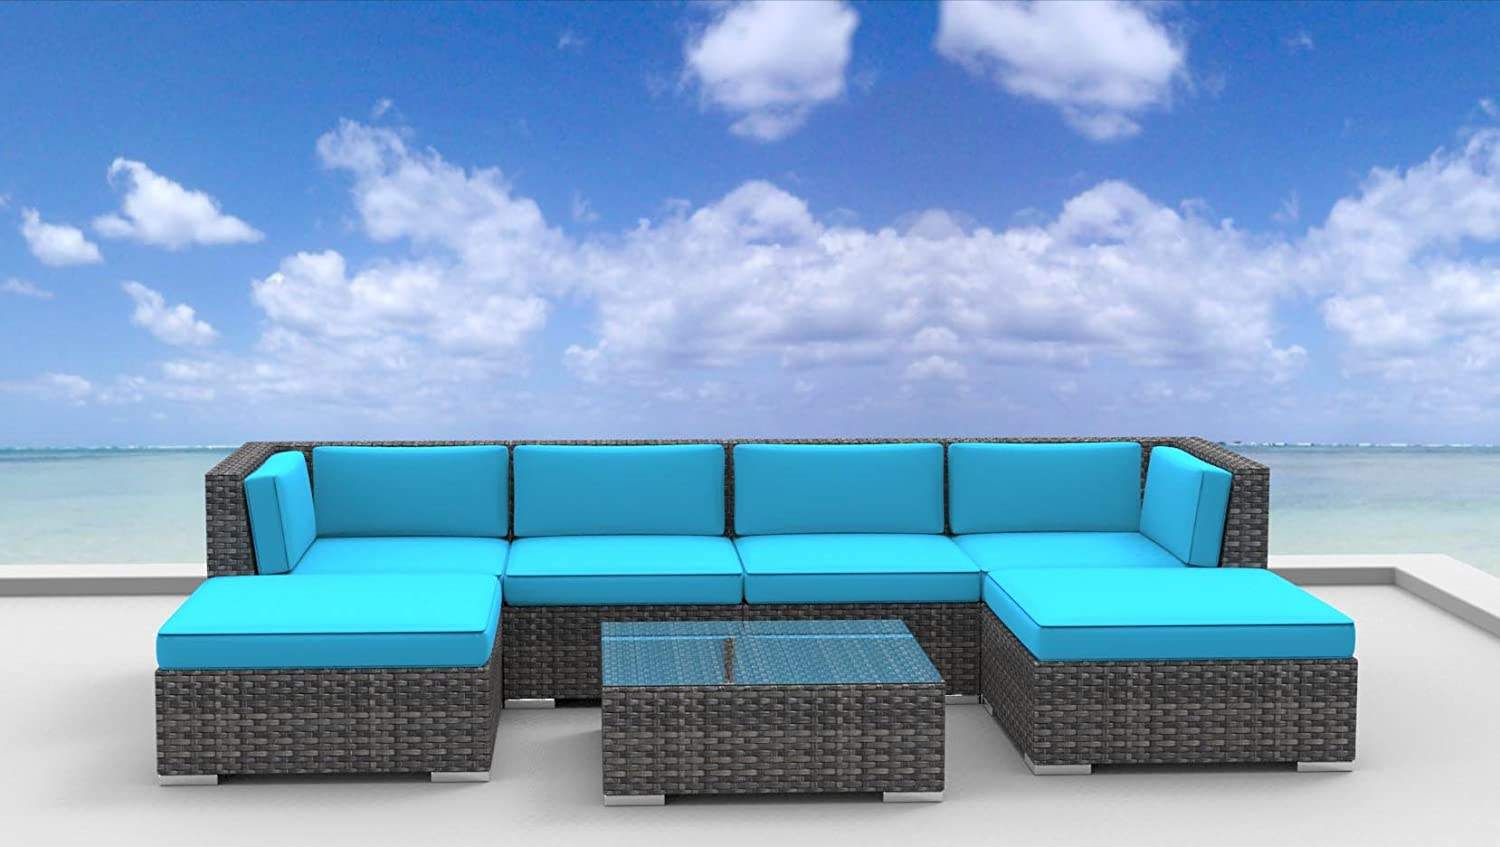 www.urbanfurnishing.net Urban Furnishing - MAUI 7pc Modern Outdoor Backyard Wicker Rattan Patio Furniture Sofa Sectional Couch Set - Sea Blue at Sears.com